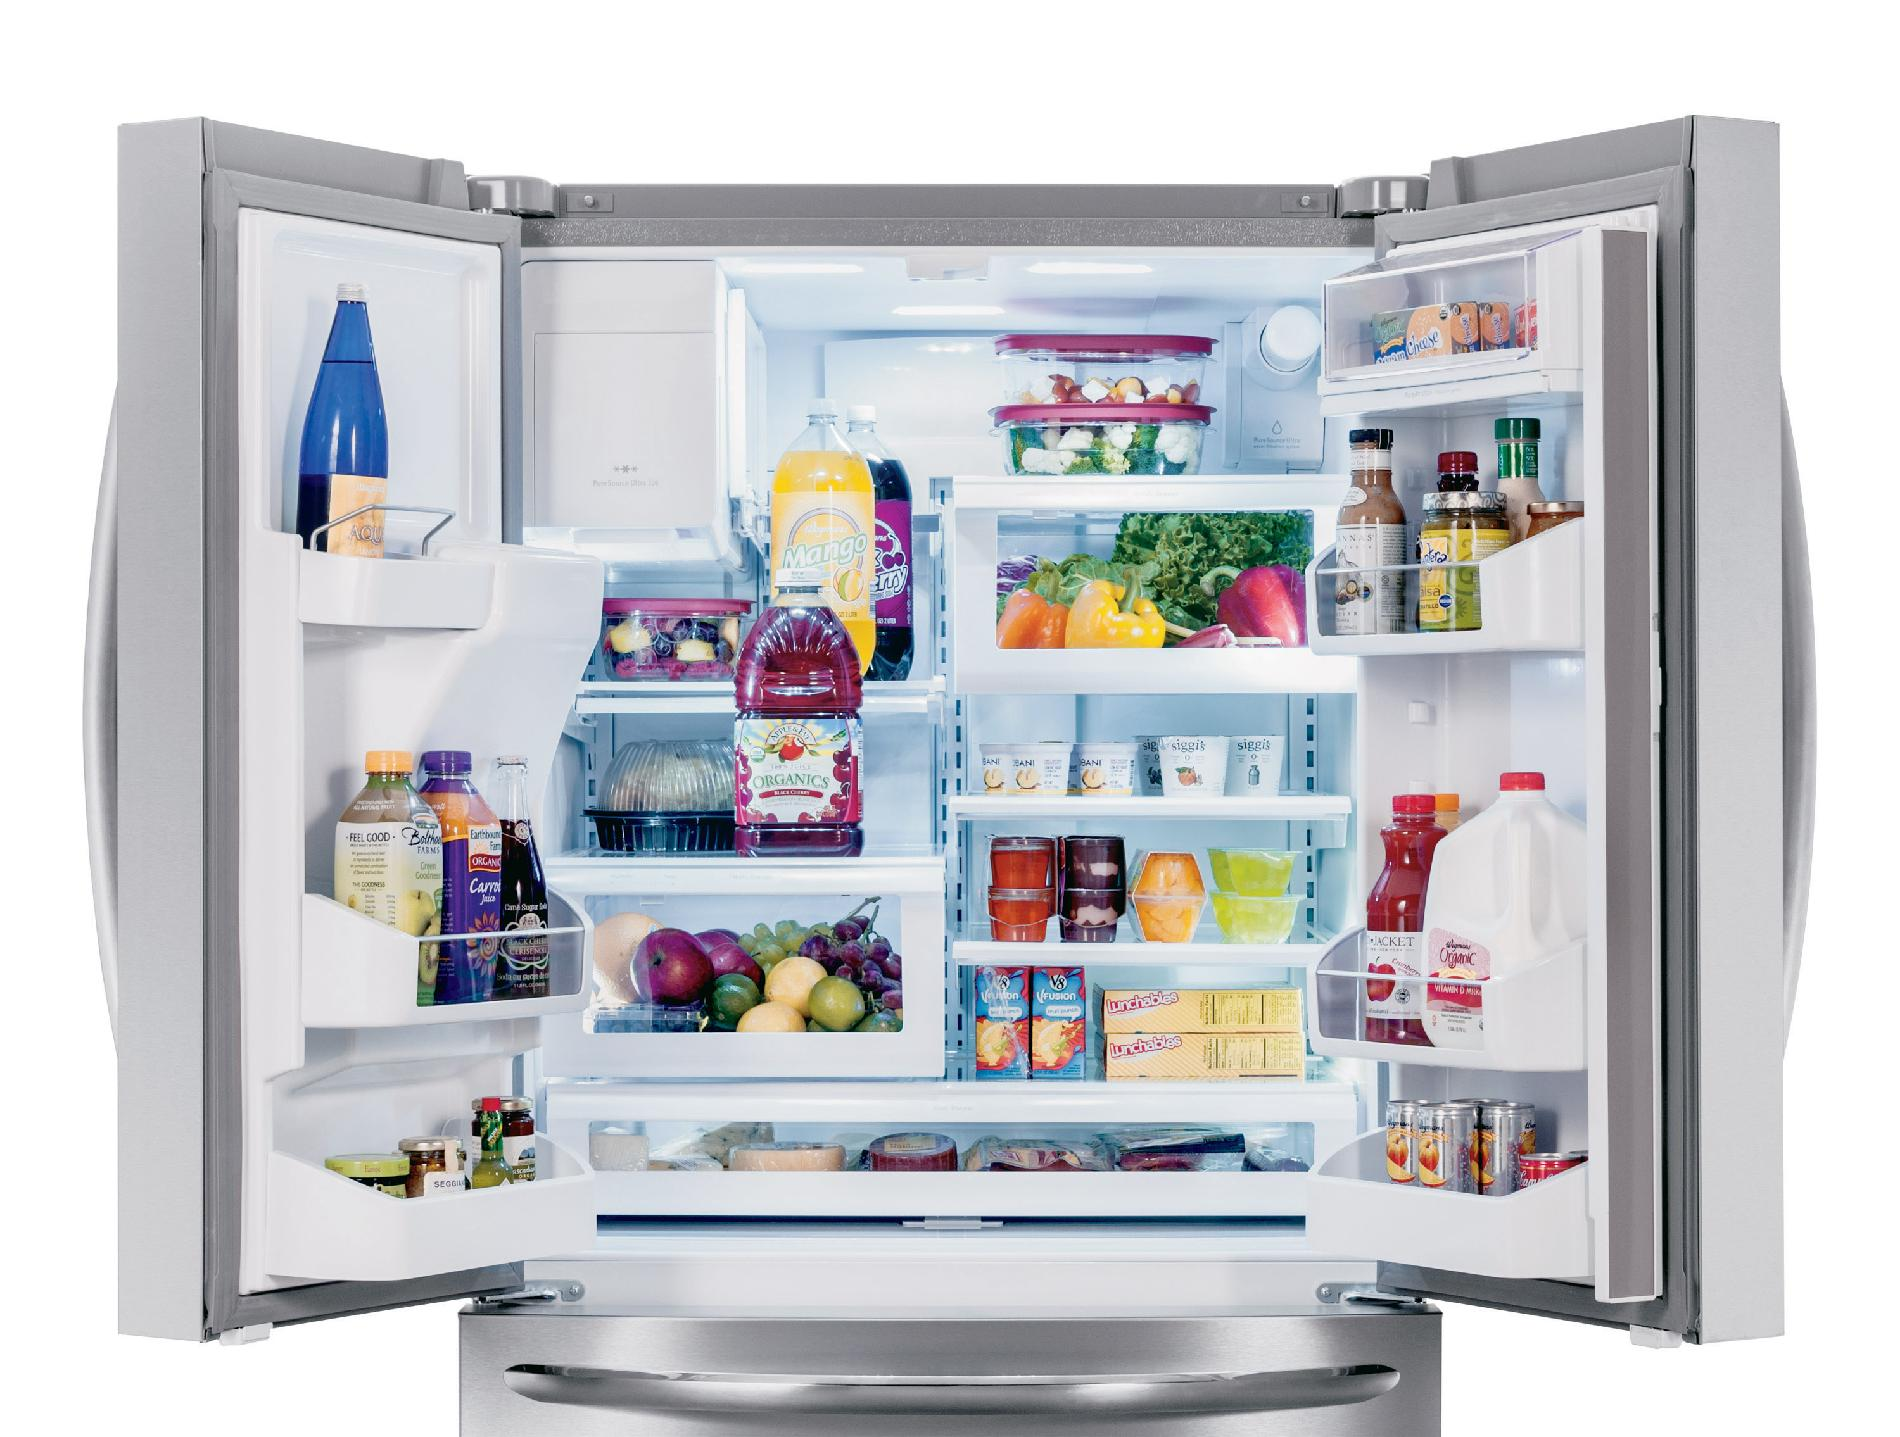 Frigidaire Gallery FGHB2866PF Gallery 27.9 cu. ft. French Door Refrigerator - Stainless Steel